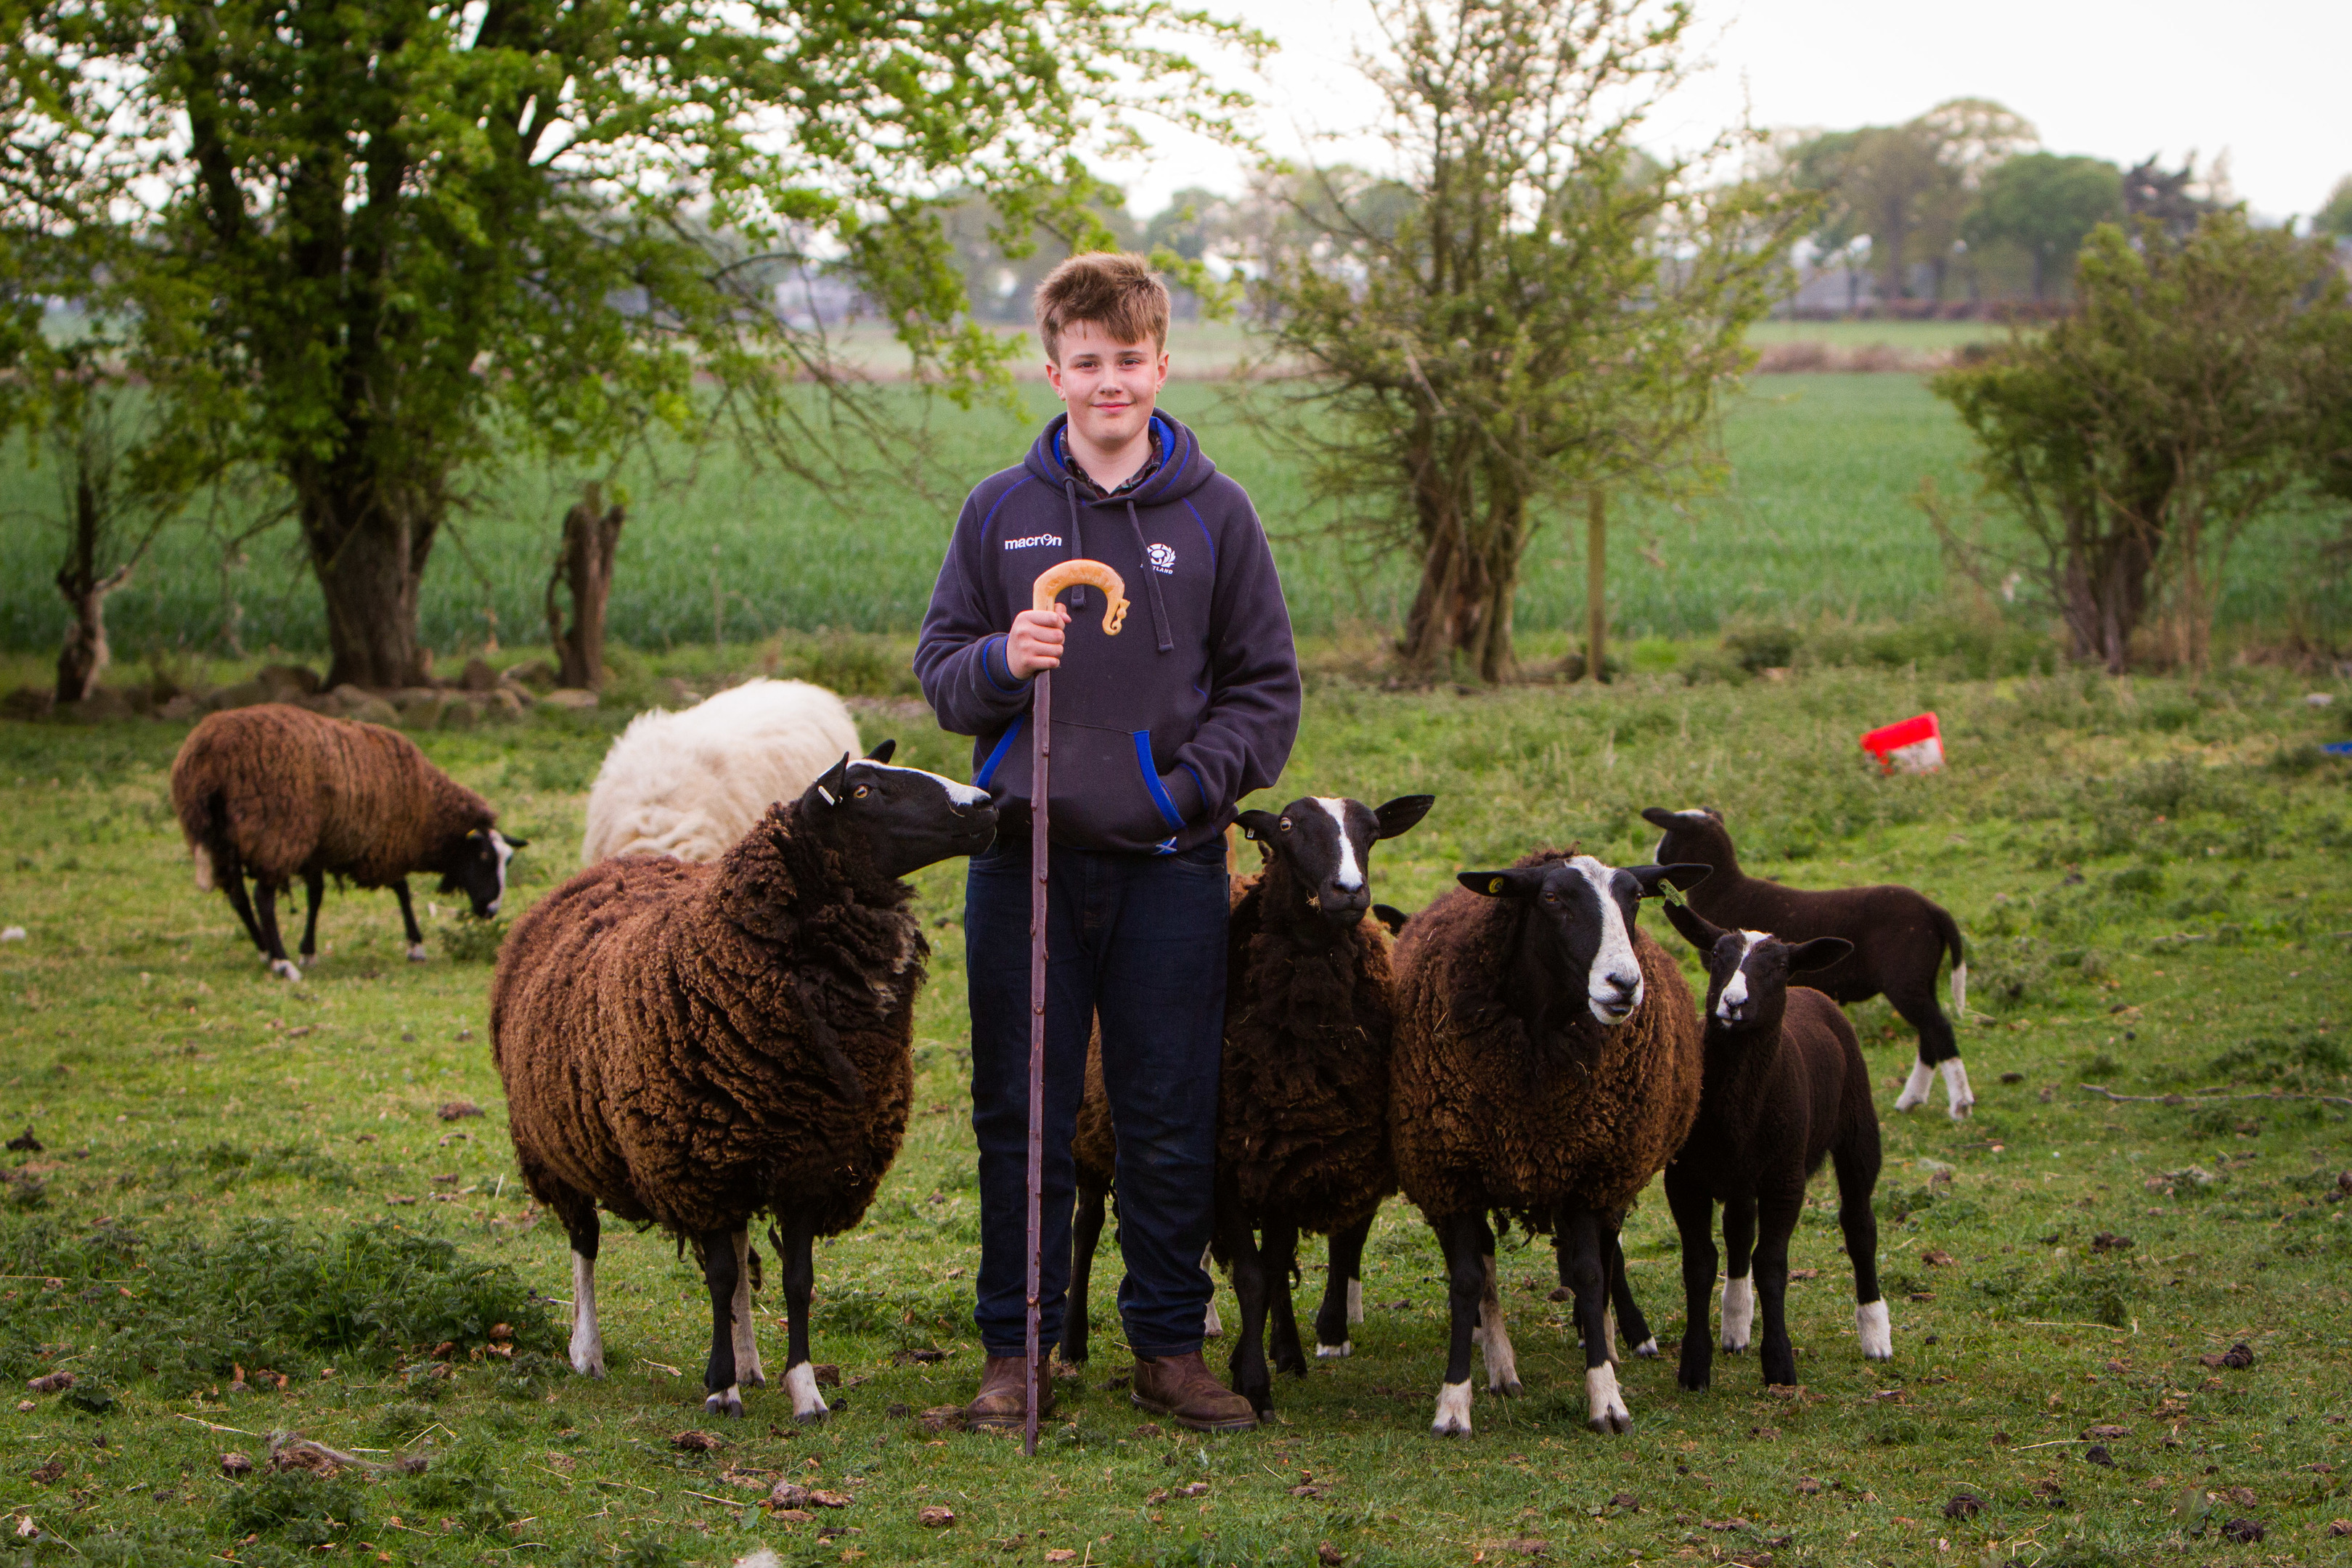 Young farmer Archie Downie had his pedigree flock of sheep attacked by a dog, twice.